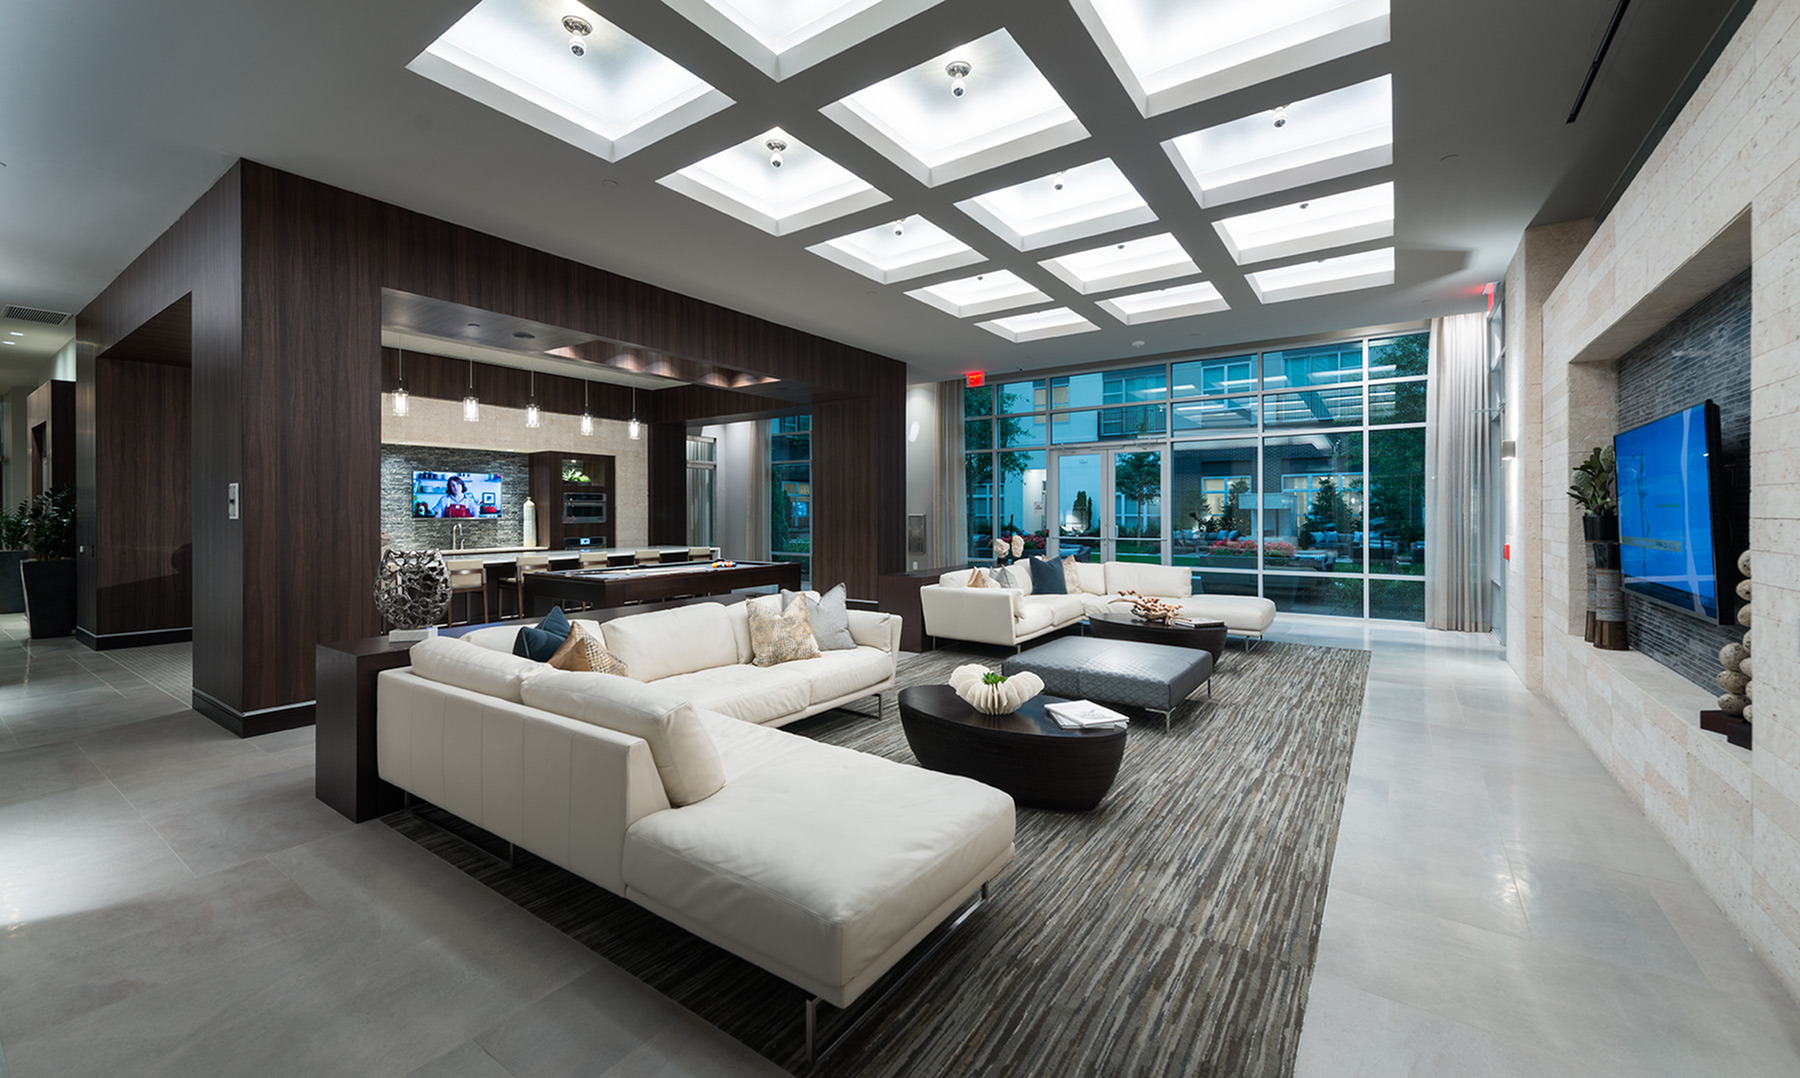 Welcoming reception room with HDTV lounge at Hanover Cross Street